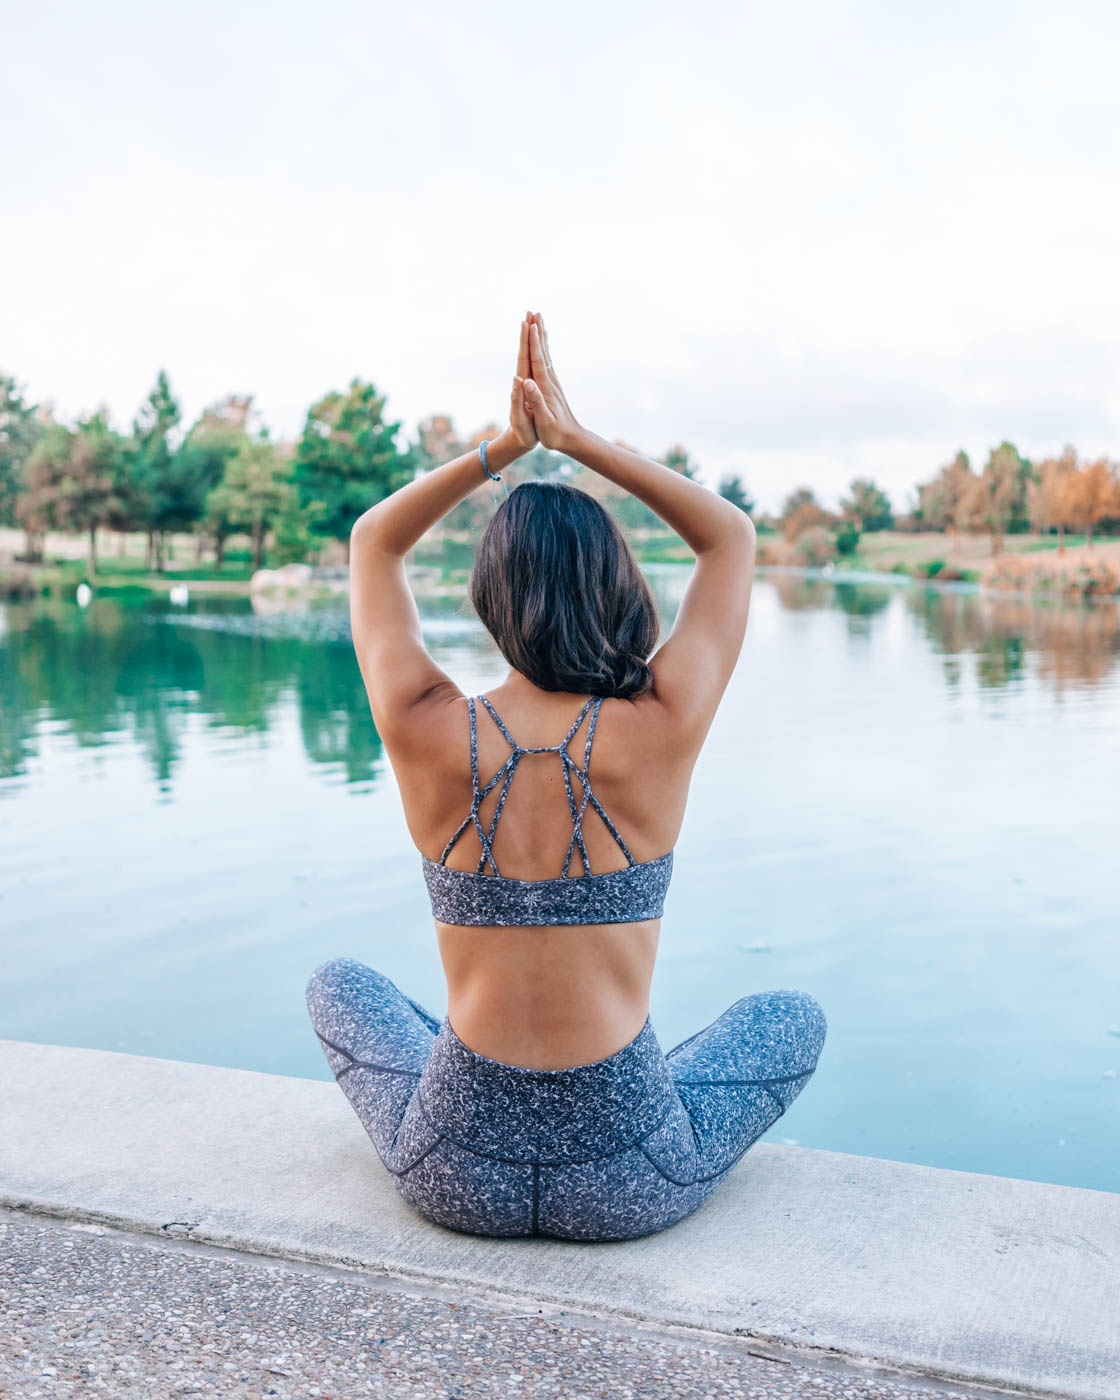 How My Yoga Practice Has Evolved Over the Years | In this post, I share how I found yoga, how it helped me and how it fits into my life today. As I reflect on this evolution, I feel immense gratitude. Just as yoga has been there for me, Athleta has been there since the beginning of my entrepreneurial efforts. Yoga is my foundation. I turn to my mat when I need to get out of my head. #yogaposes #yogainspiration #yogaoutfit #yogablogger #morningyoga #reflection #gratitudejournal #athleta